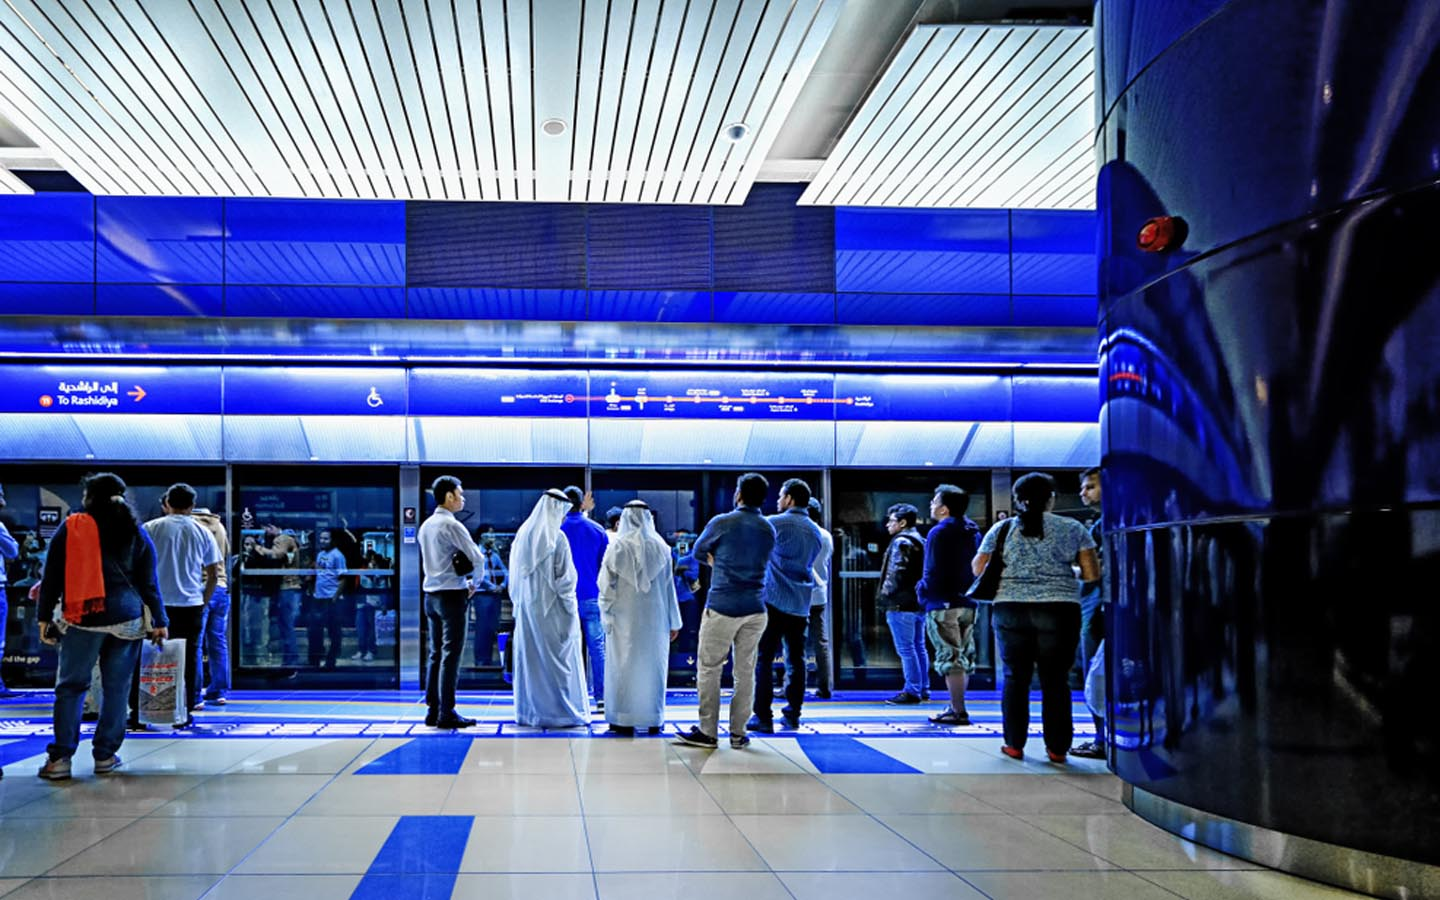 People waiting at a metro station in Dubai